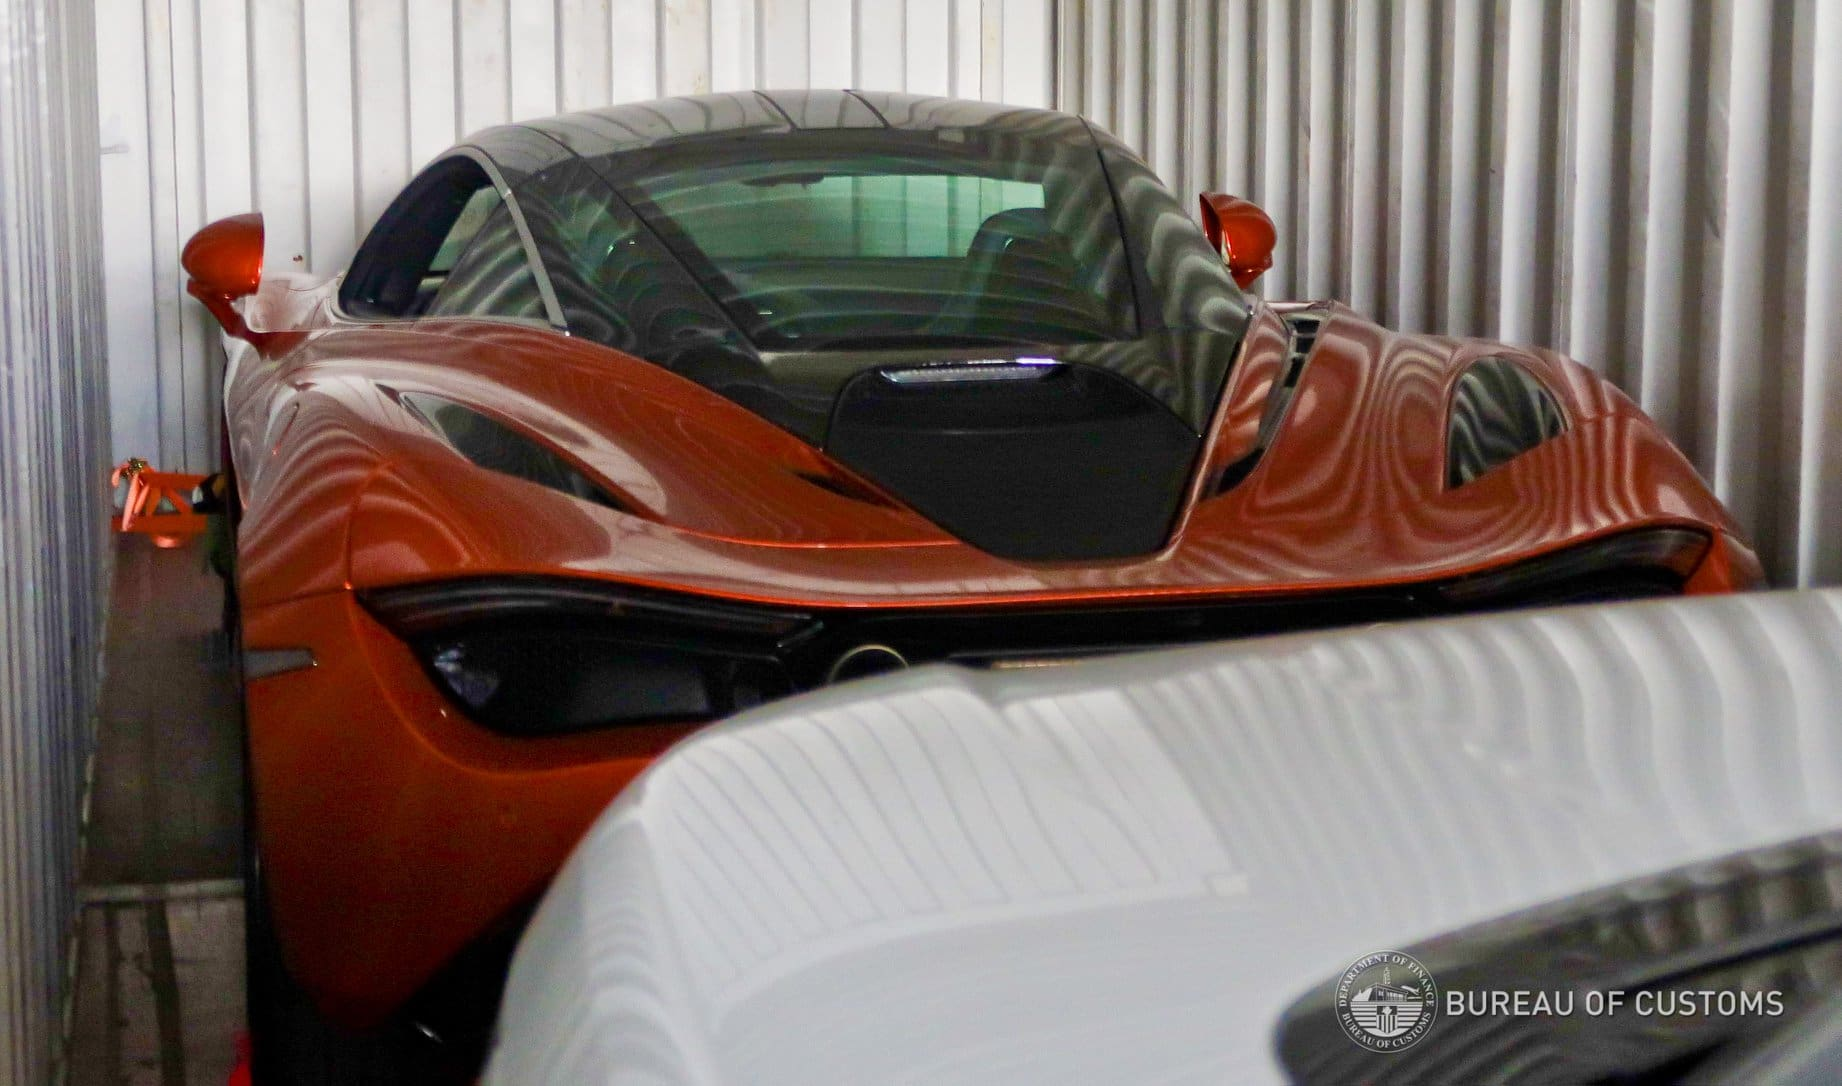 Customs Chief: Confiscated Supercars Still Under Litigation